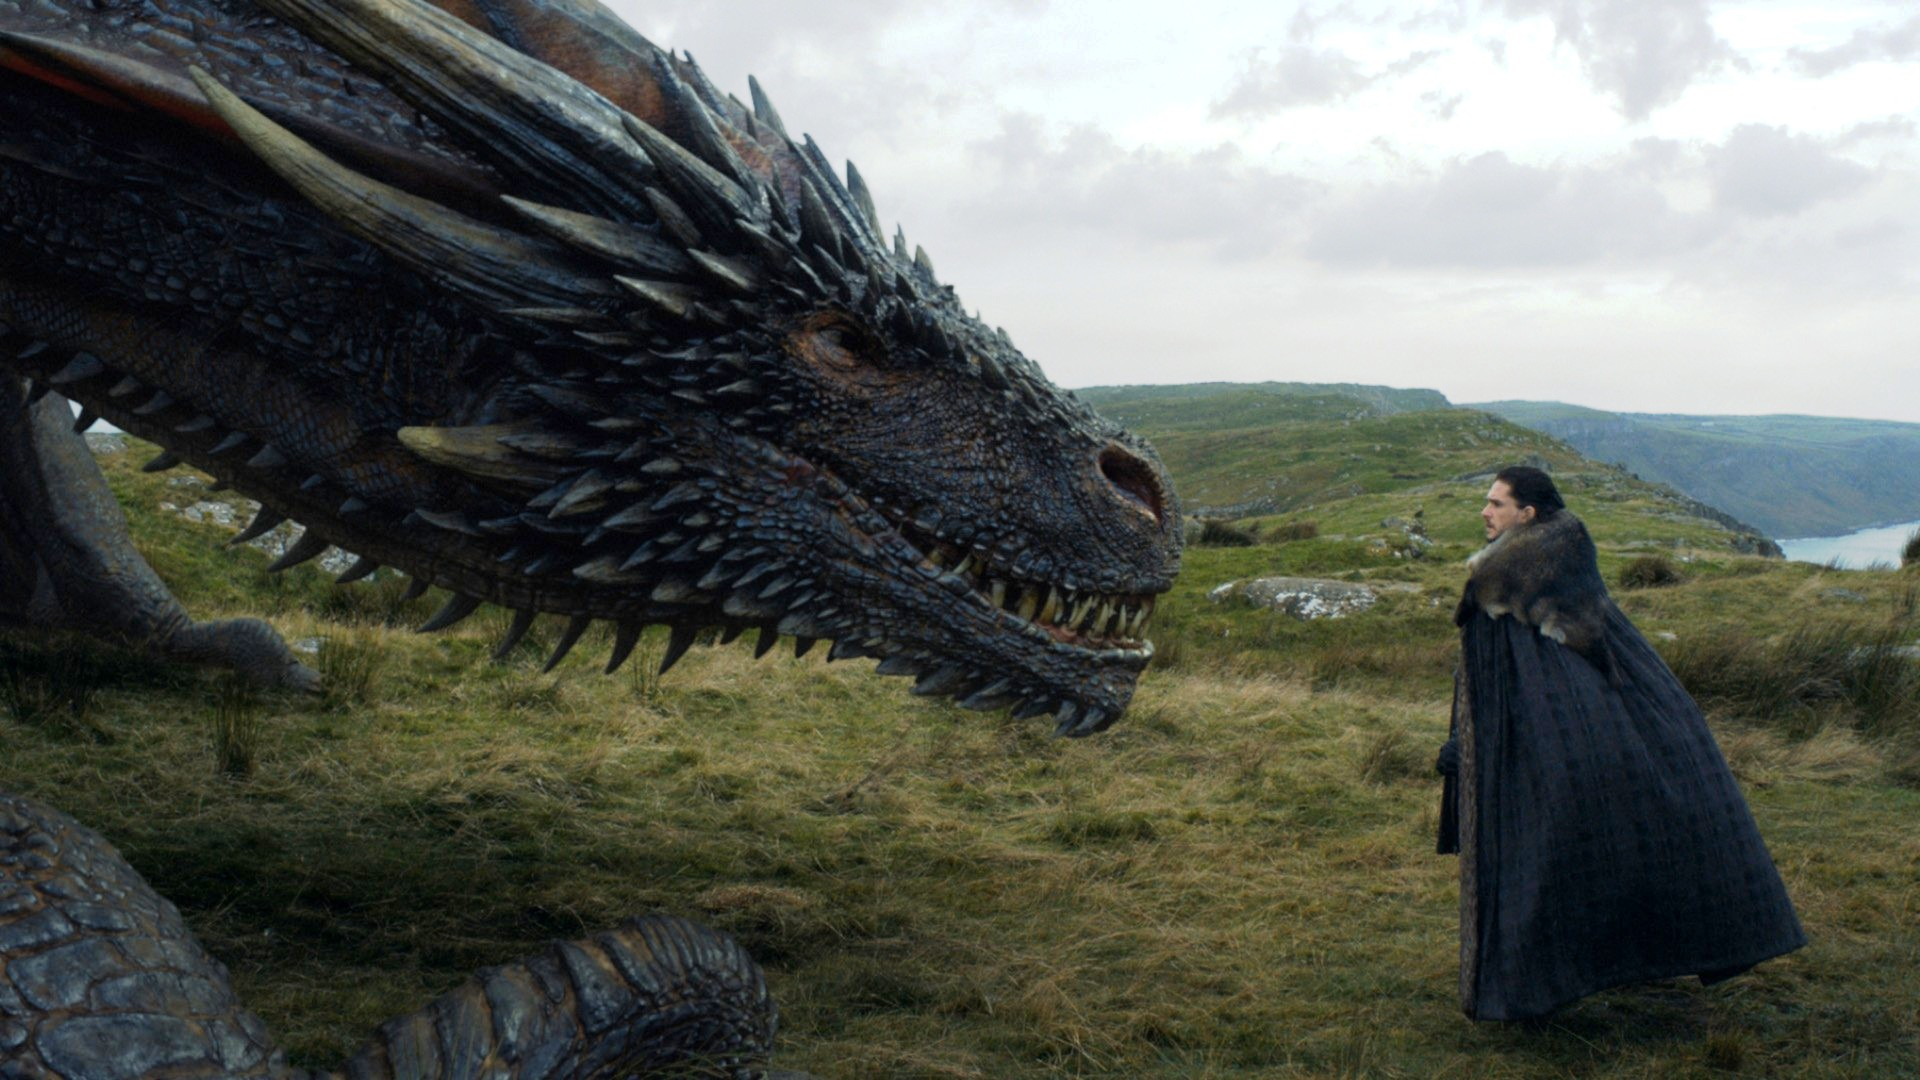 Free Download Game Of Thrones Dragons Full Movie Wallpaper